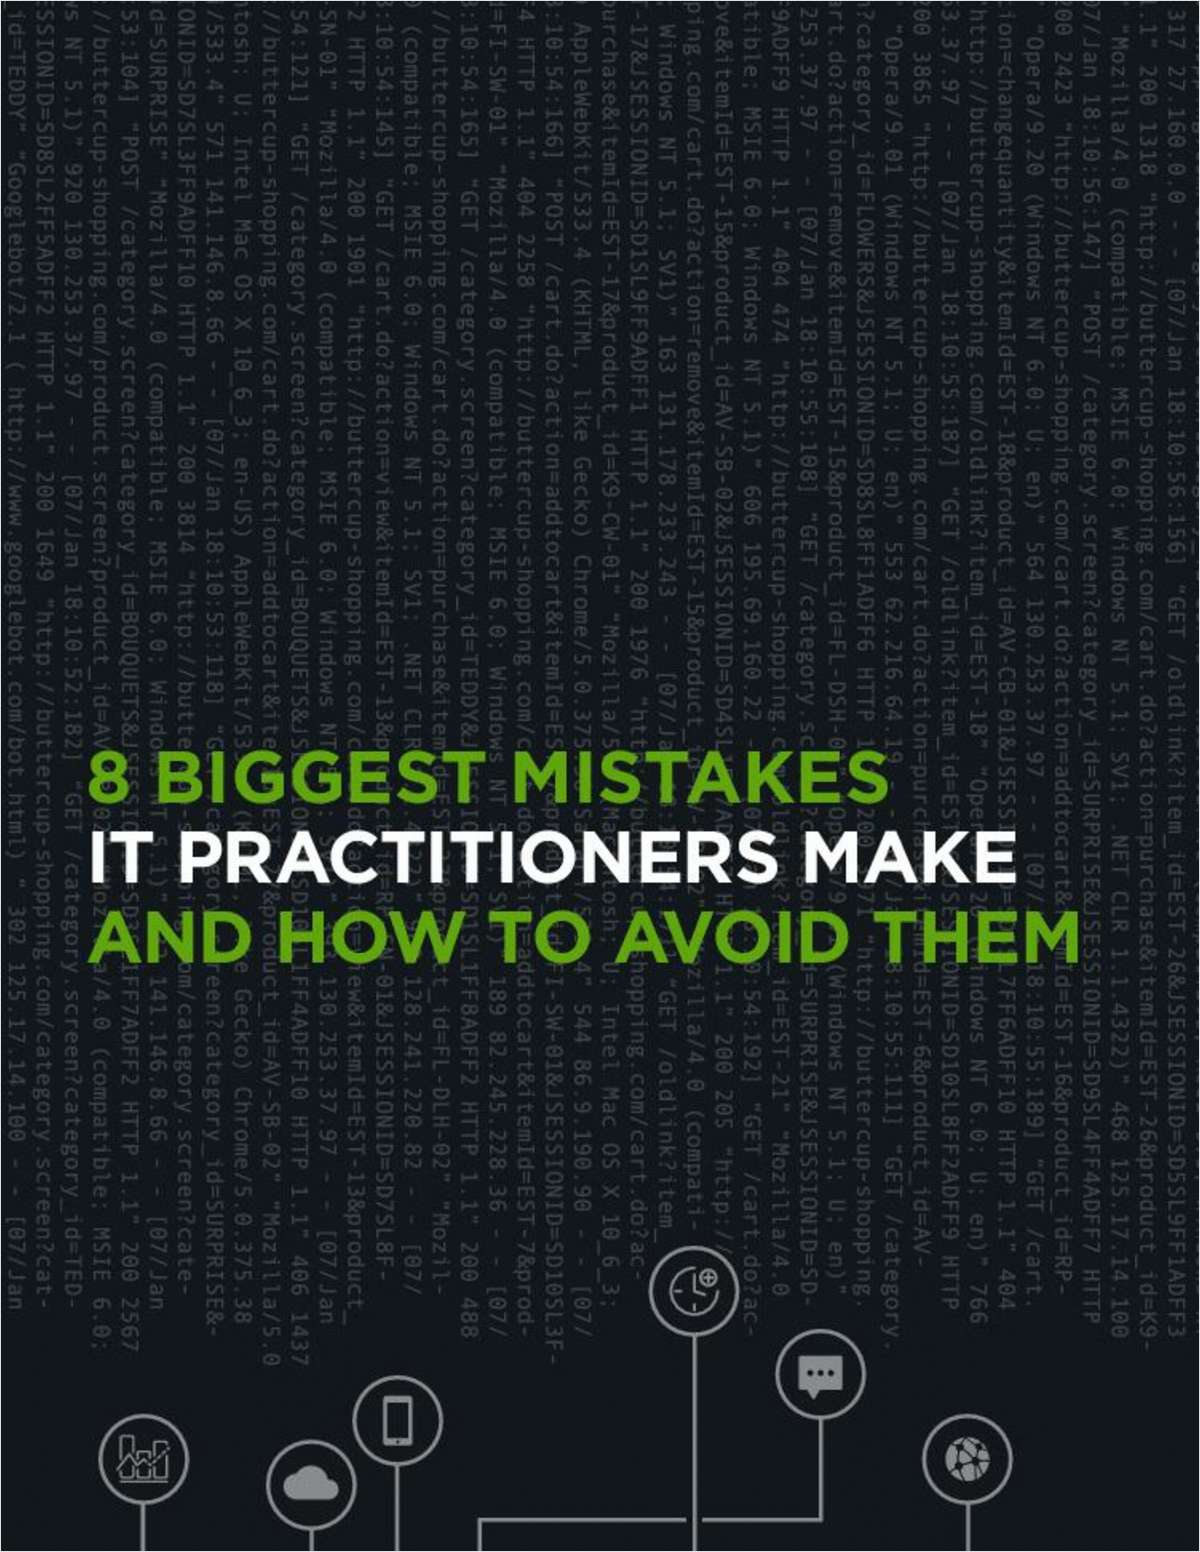 8 Biggest Mistakes IT Practitioners Make and How to Avoid Them Screenshot